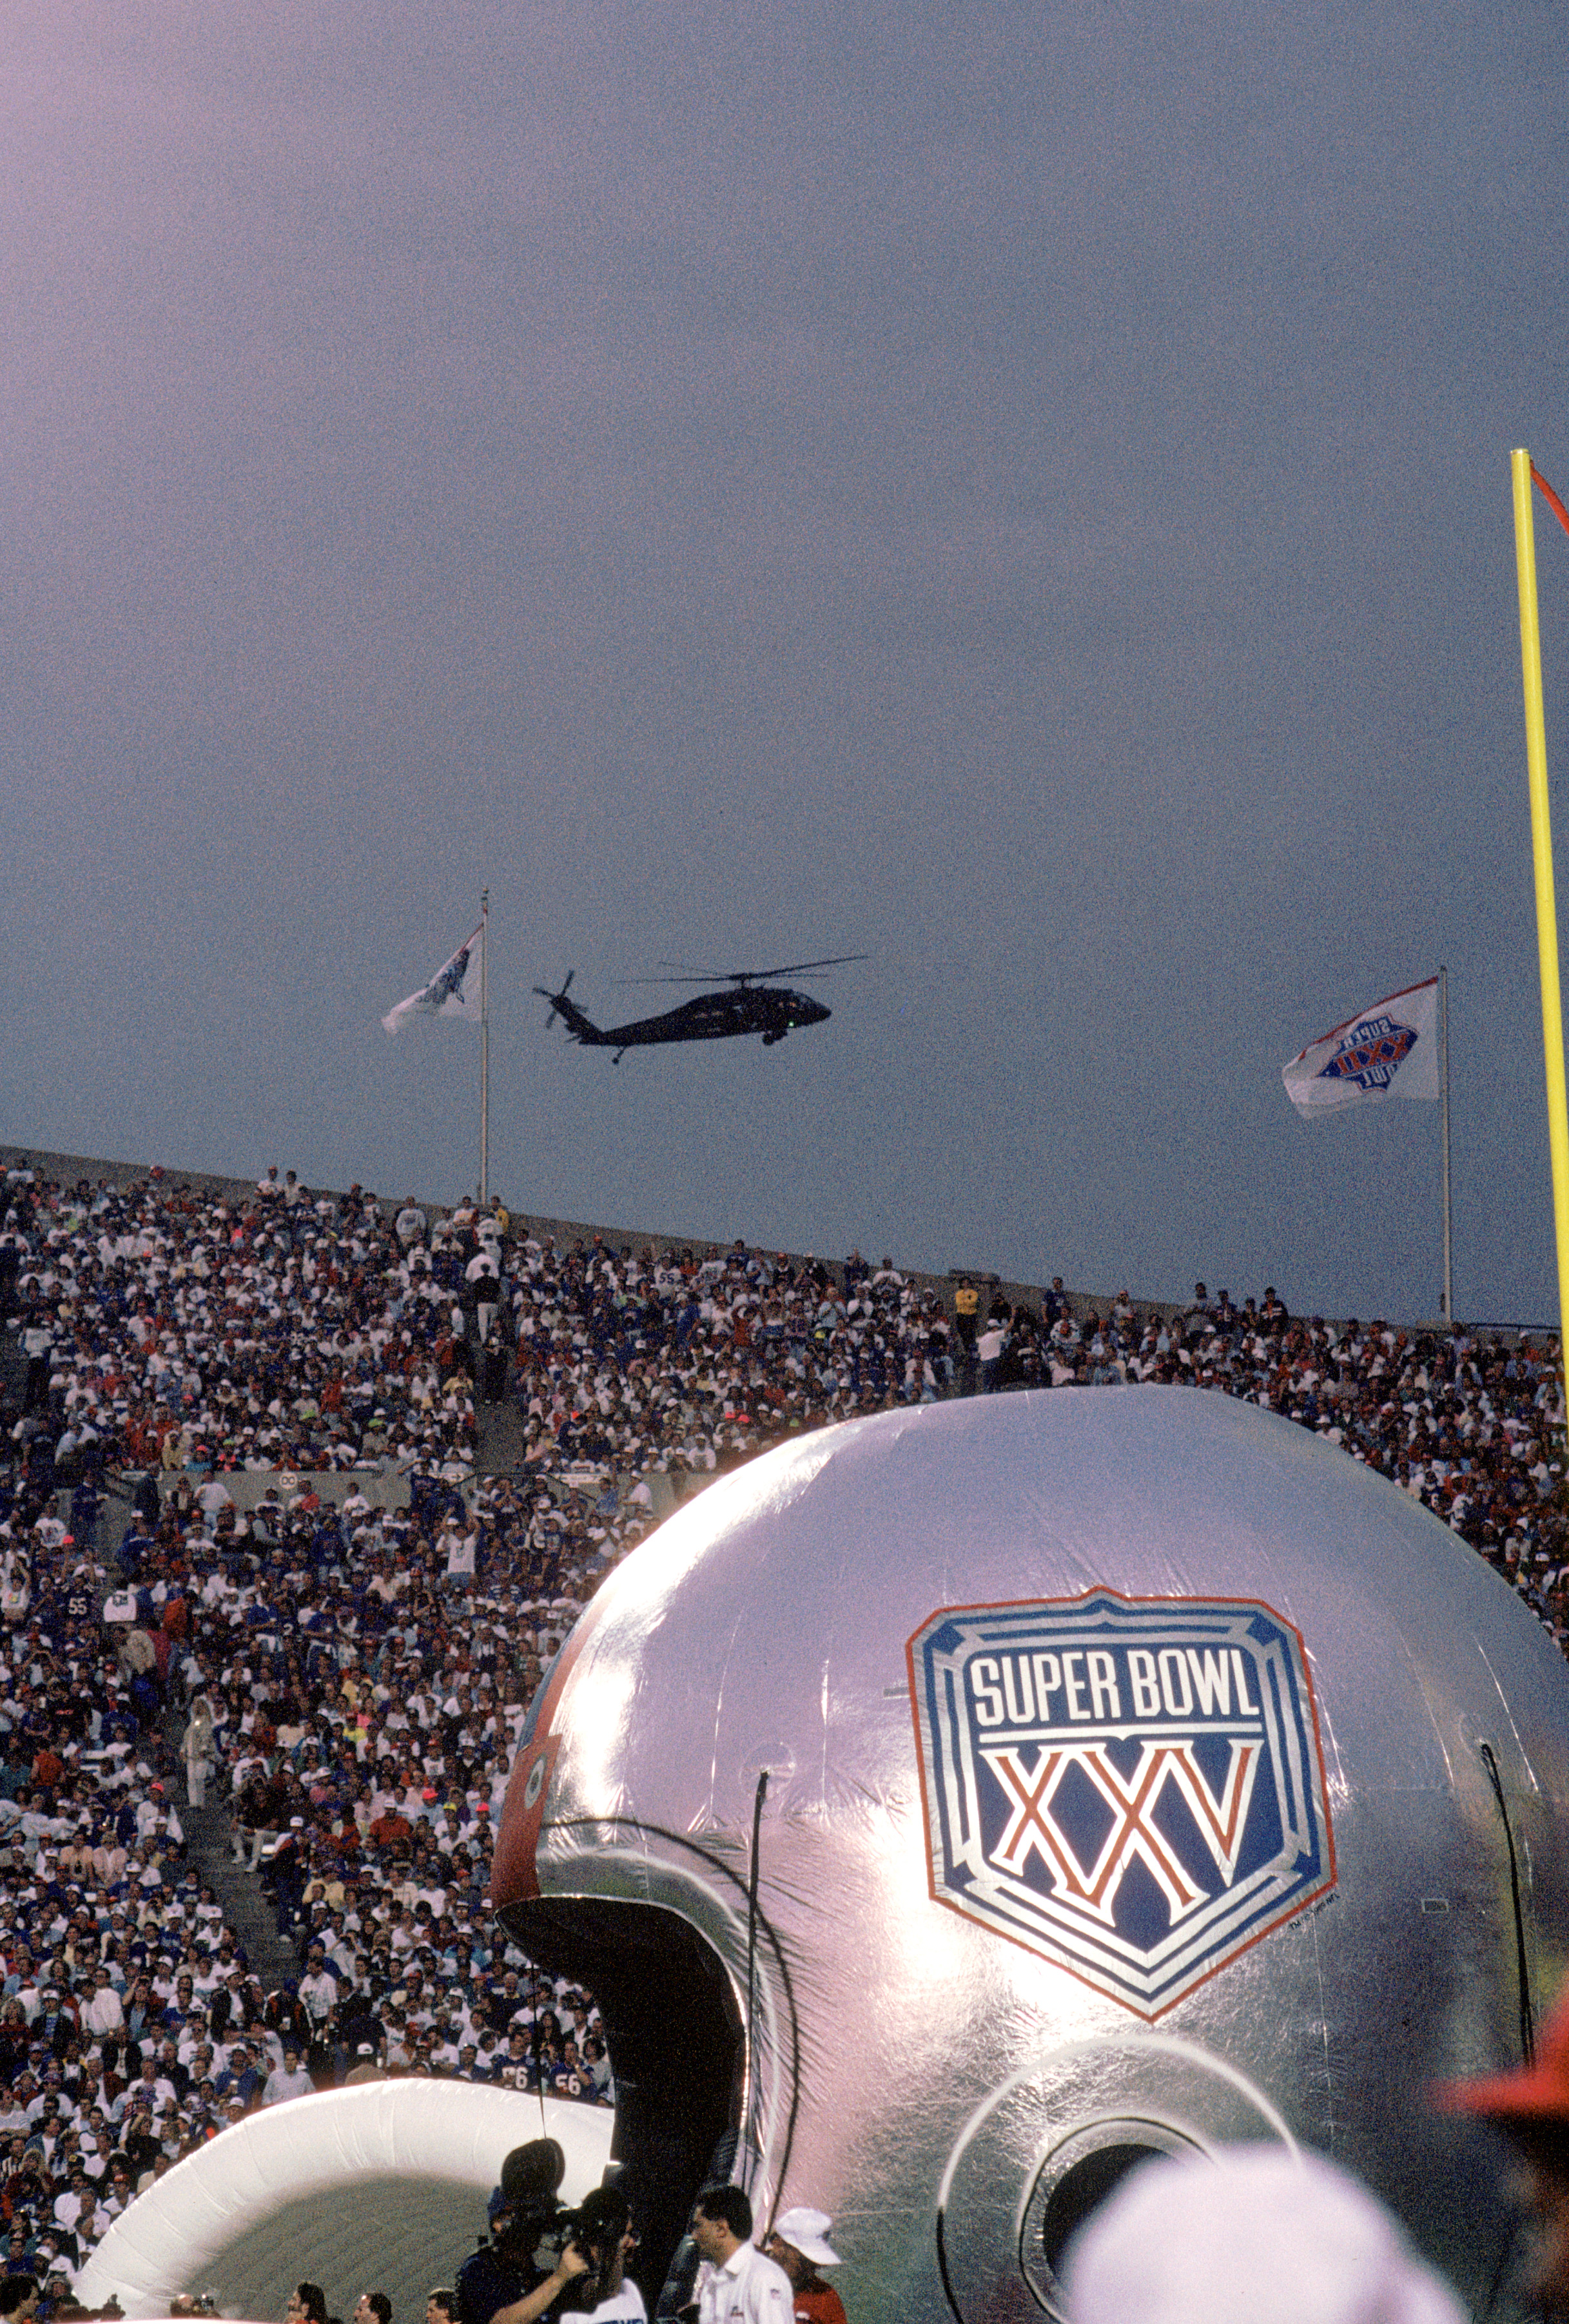 TAMPA, FL - JANUARY 27:  General view of the Super Bowl XXV logo on an inflatable helmet as a military helicopter patrols the air space above Tampa Stadium looking for terrorist prior to Super Bowl XXV between the Buffalo Bills and the New York Giants at